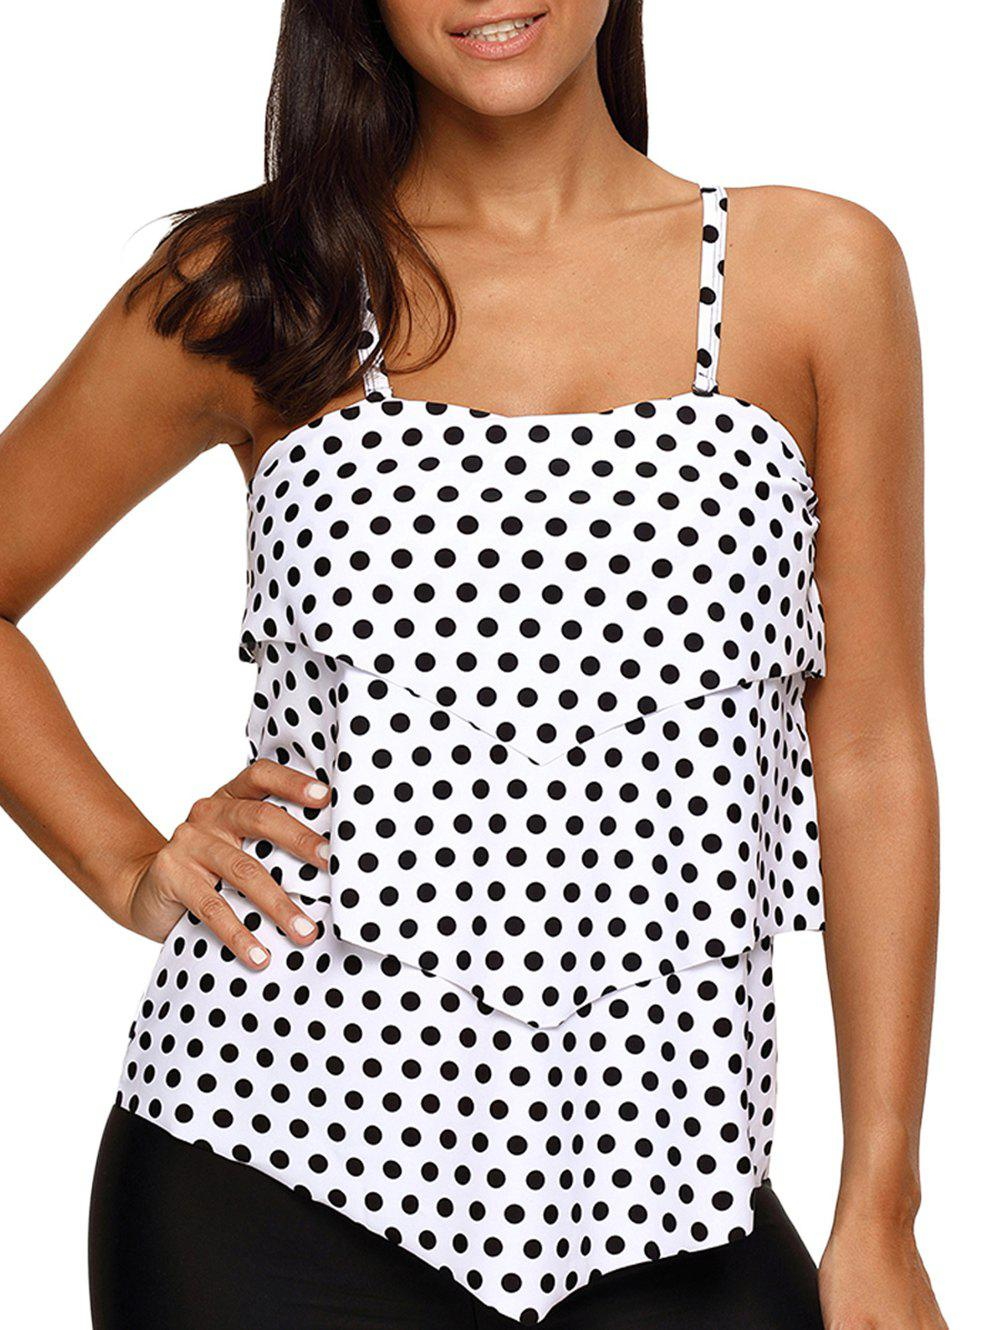 Fancy Polka Dot Layered Tankini Swim Top